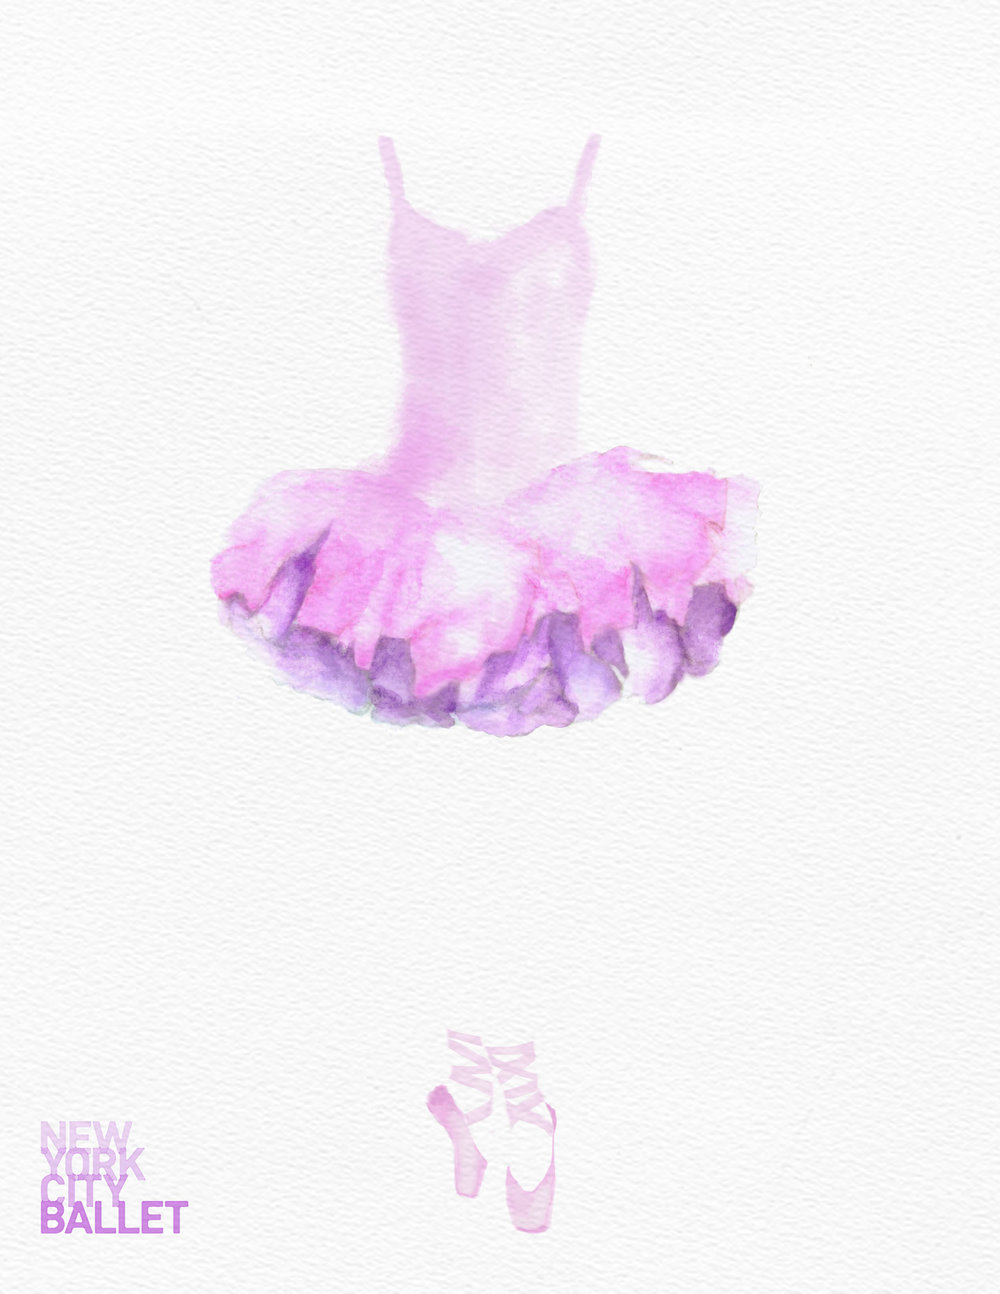 Poster for New York City Ballet by Kaitlin Schupp. Can you see the skyline?